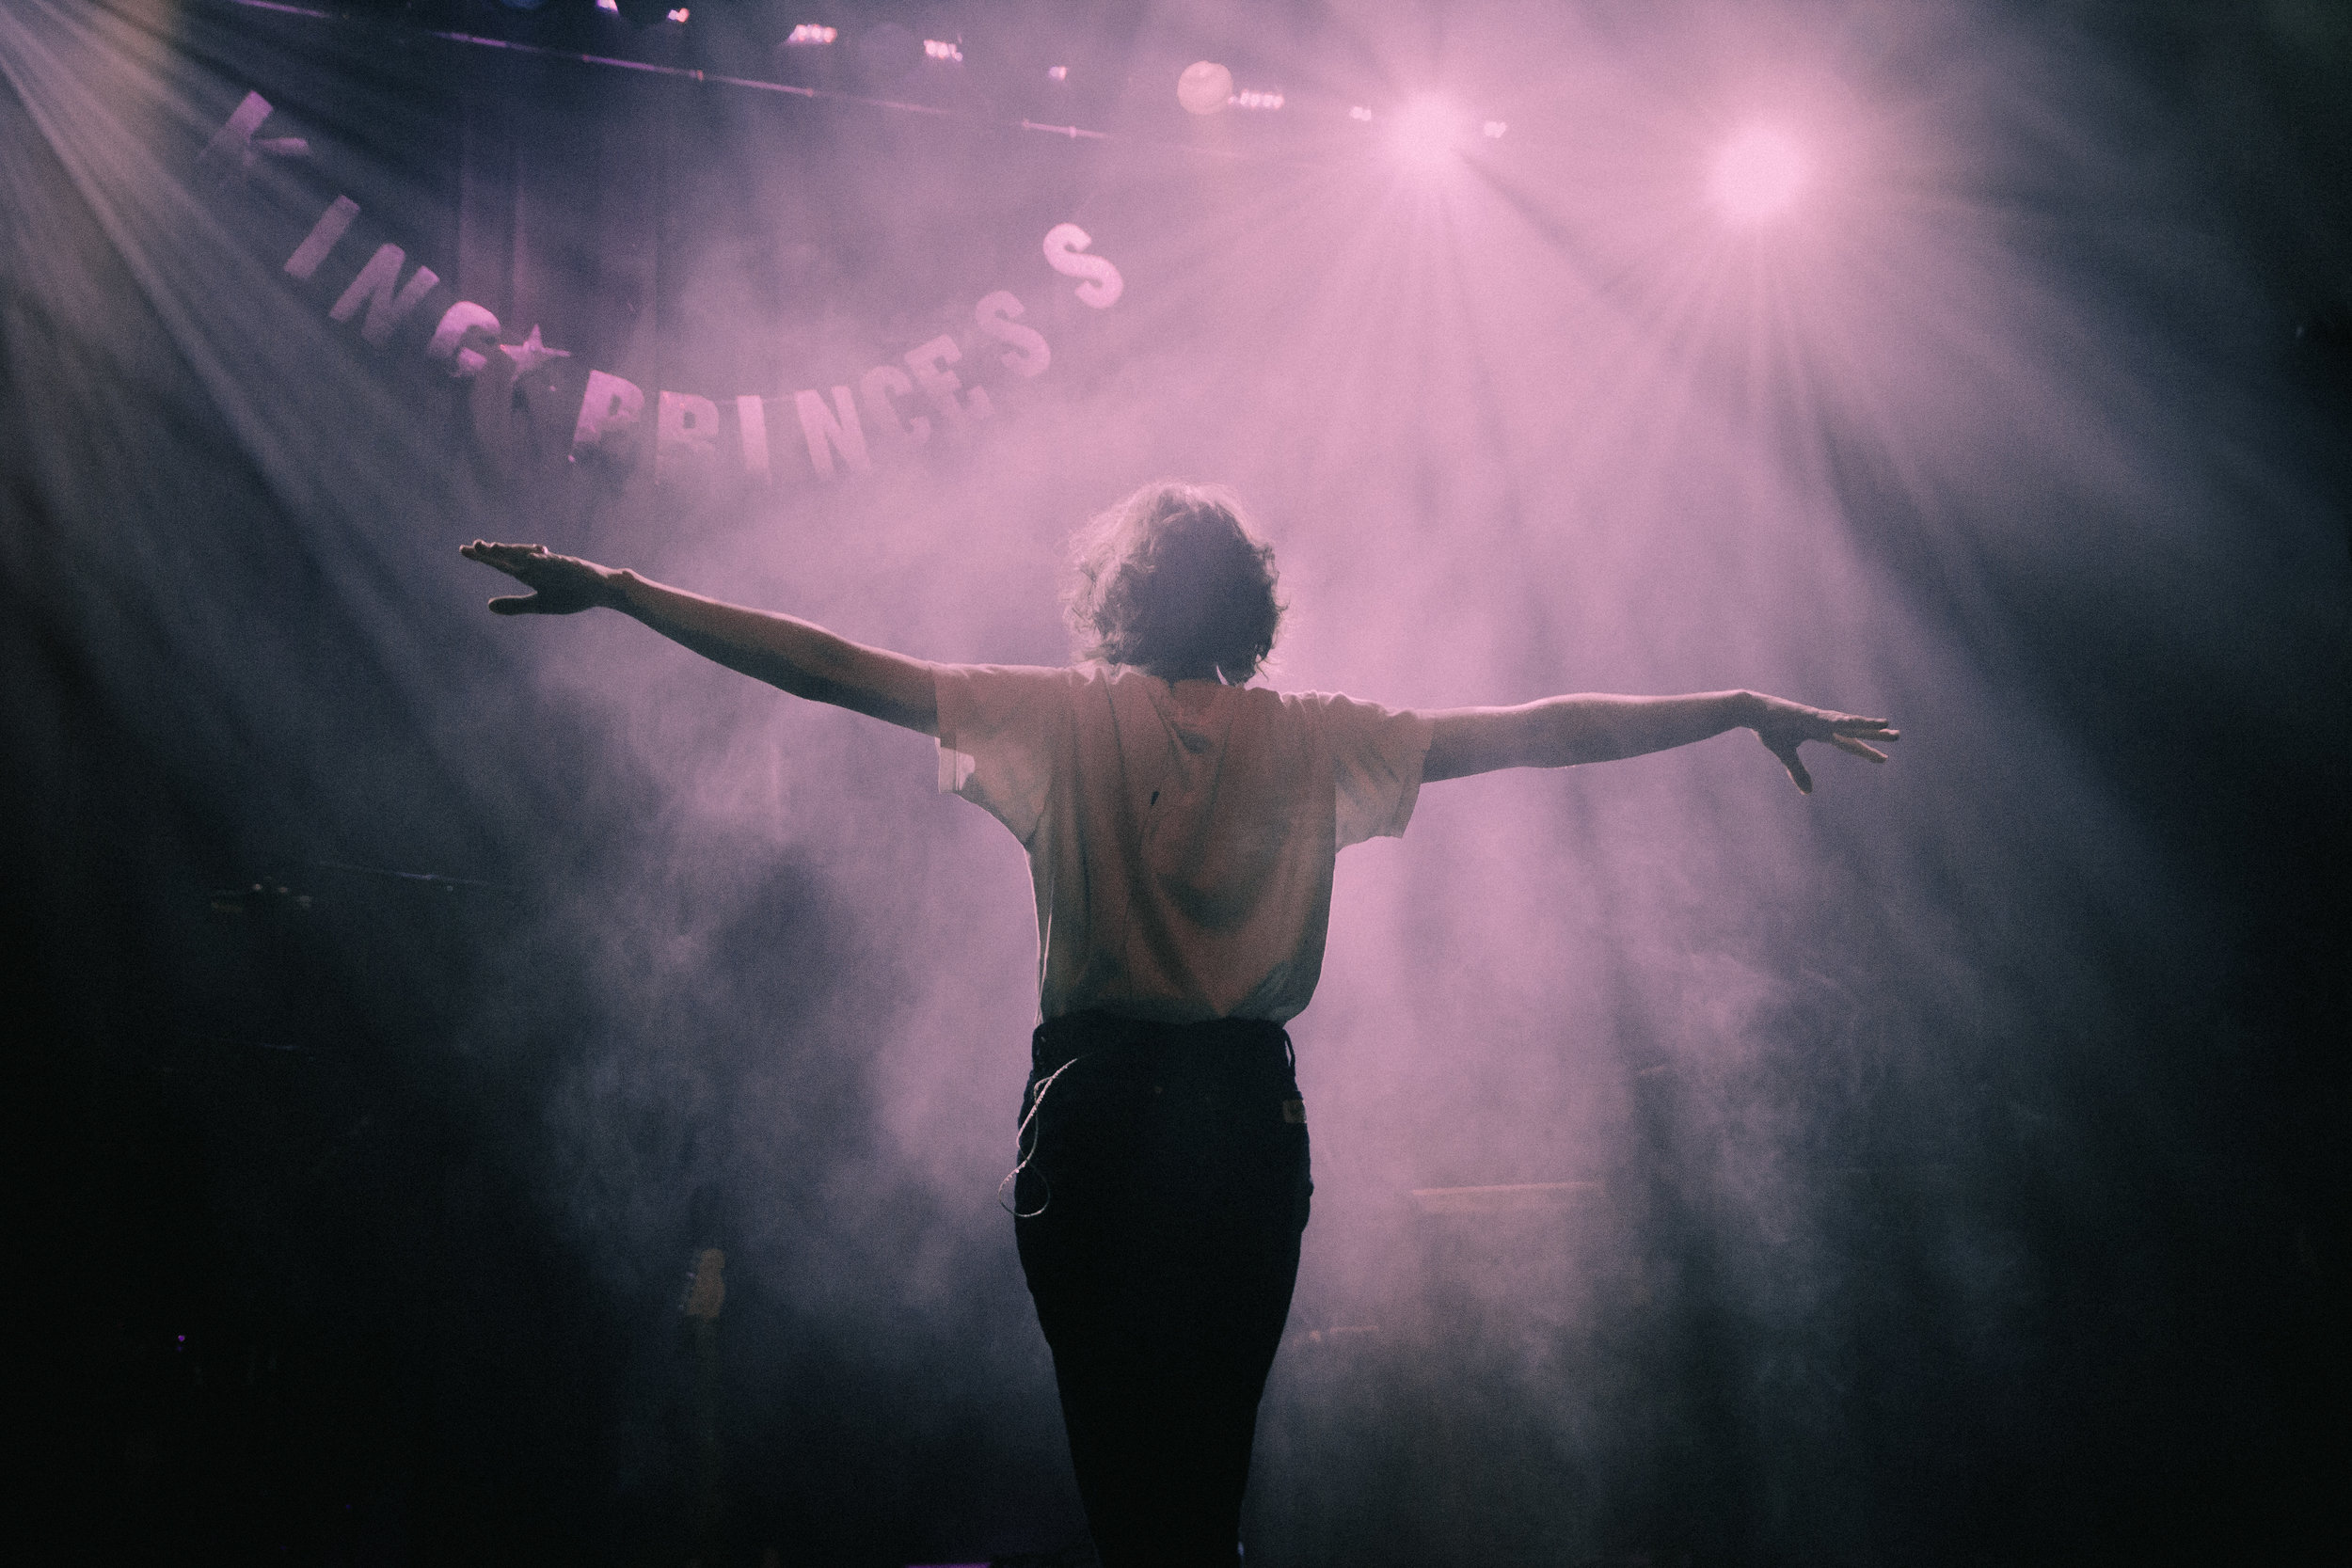 KING PRINCESS ROCKS THE HOUSE-DOWN BOOTS IN TORONTO